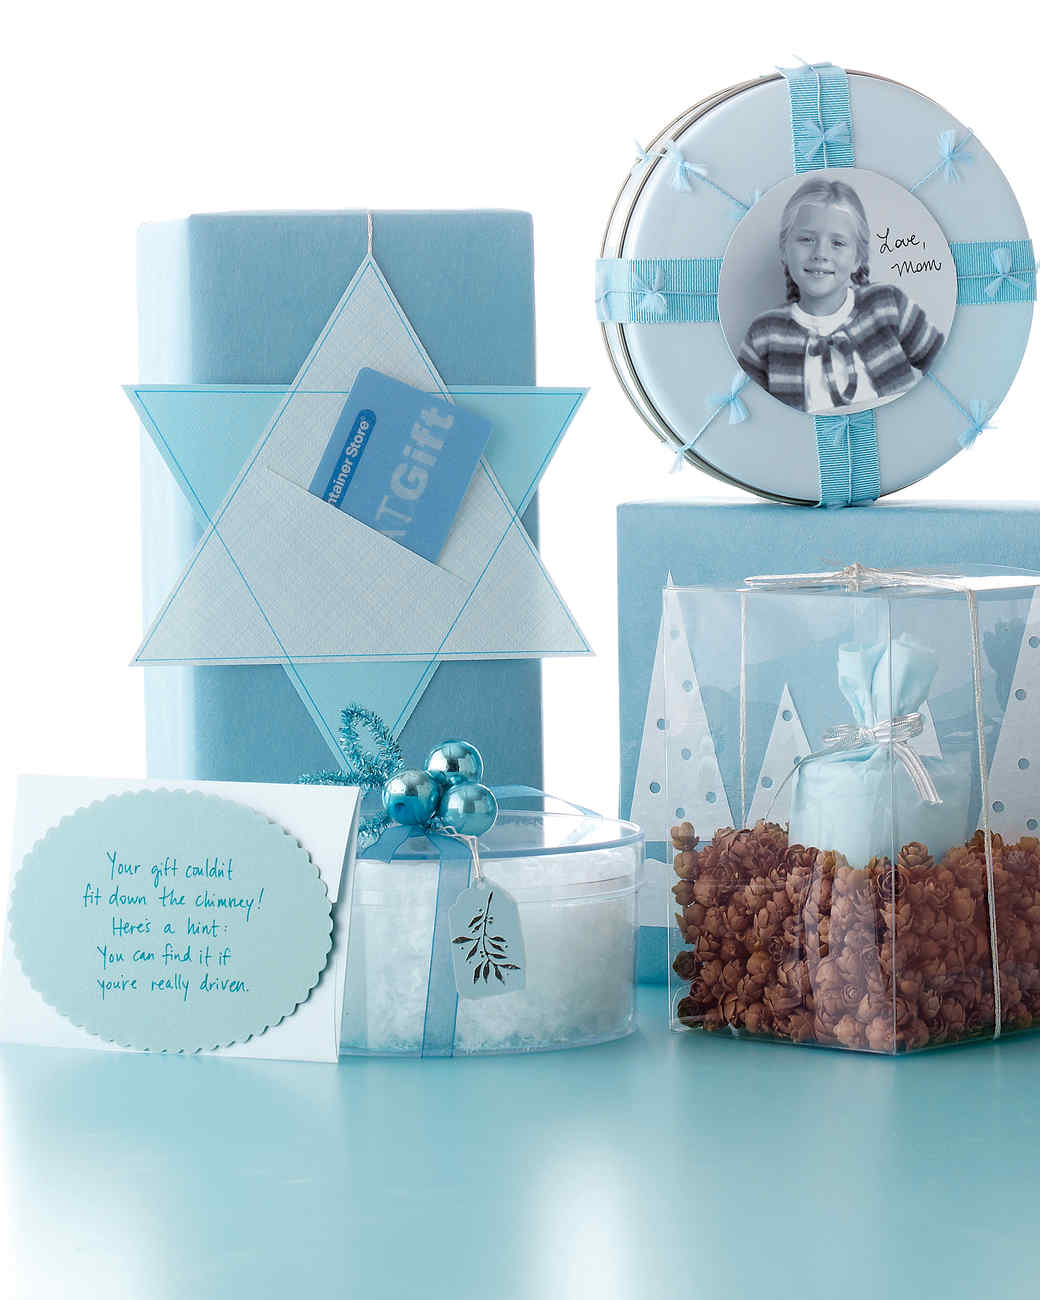 Hanukkah gifts for adults speaking